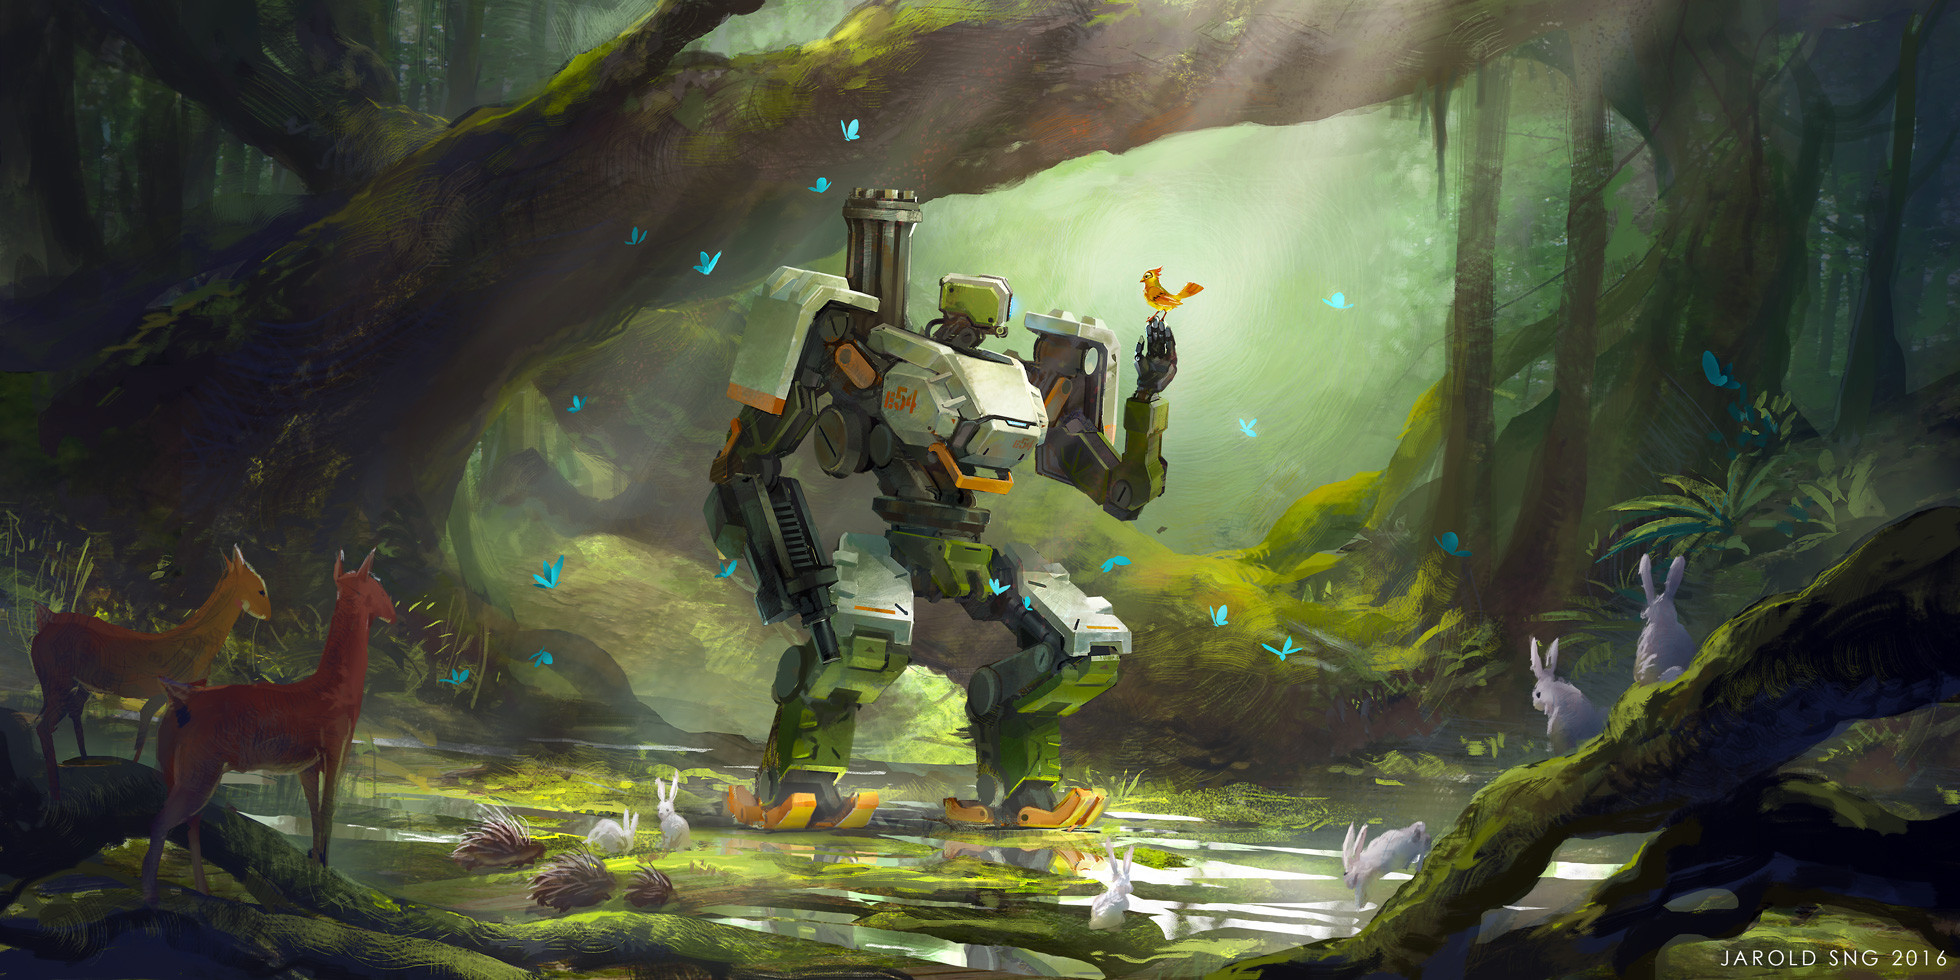 Jarold Sng Koon Shan - The Last Bastion.